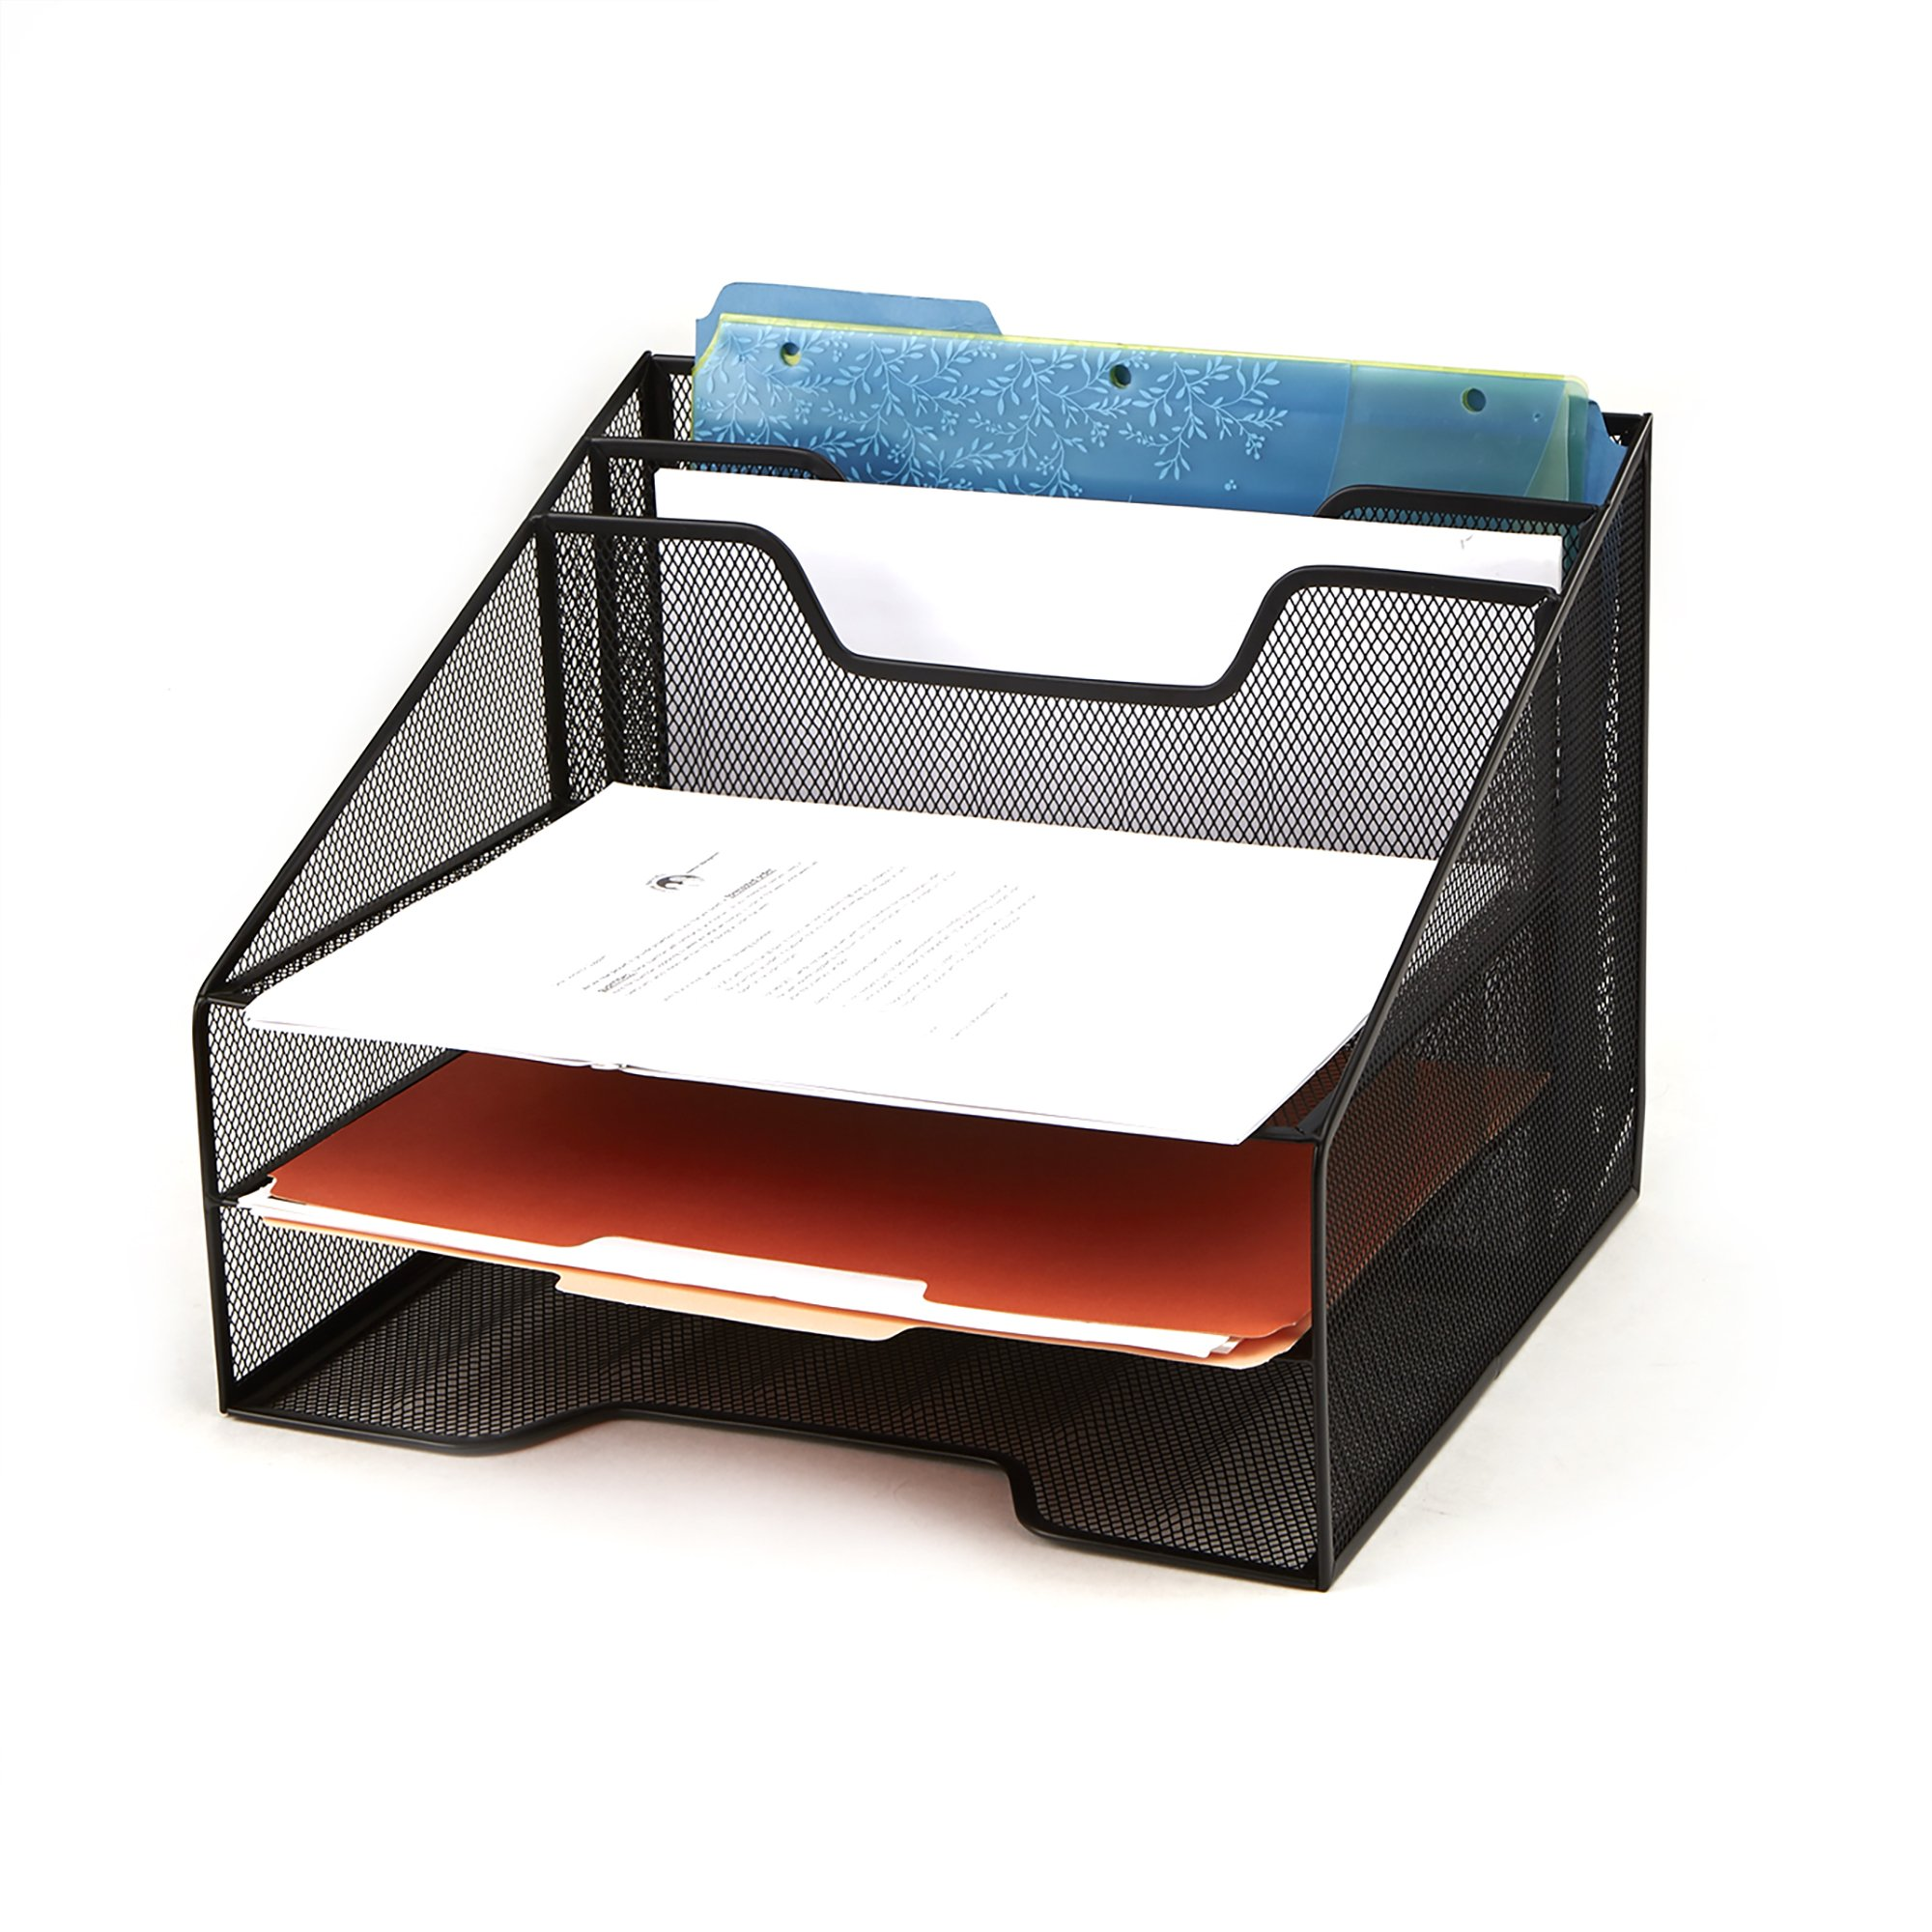 Mind Reader Mesh Desk Organizer 5 Trays Desktop Document Letter Tray for Folders, Mail, Stationary, Desk Accessories, Black